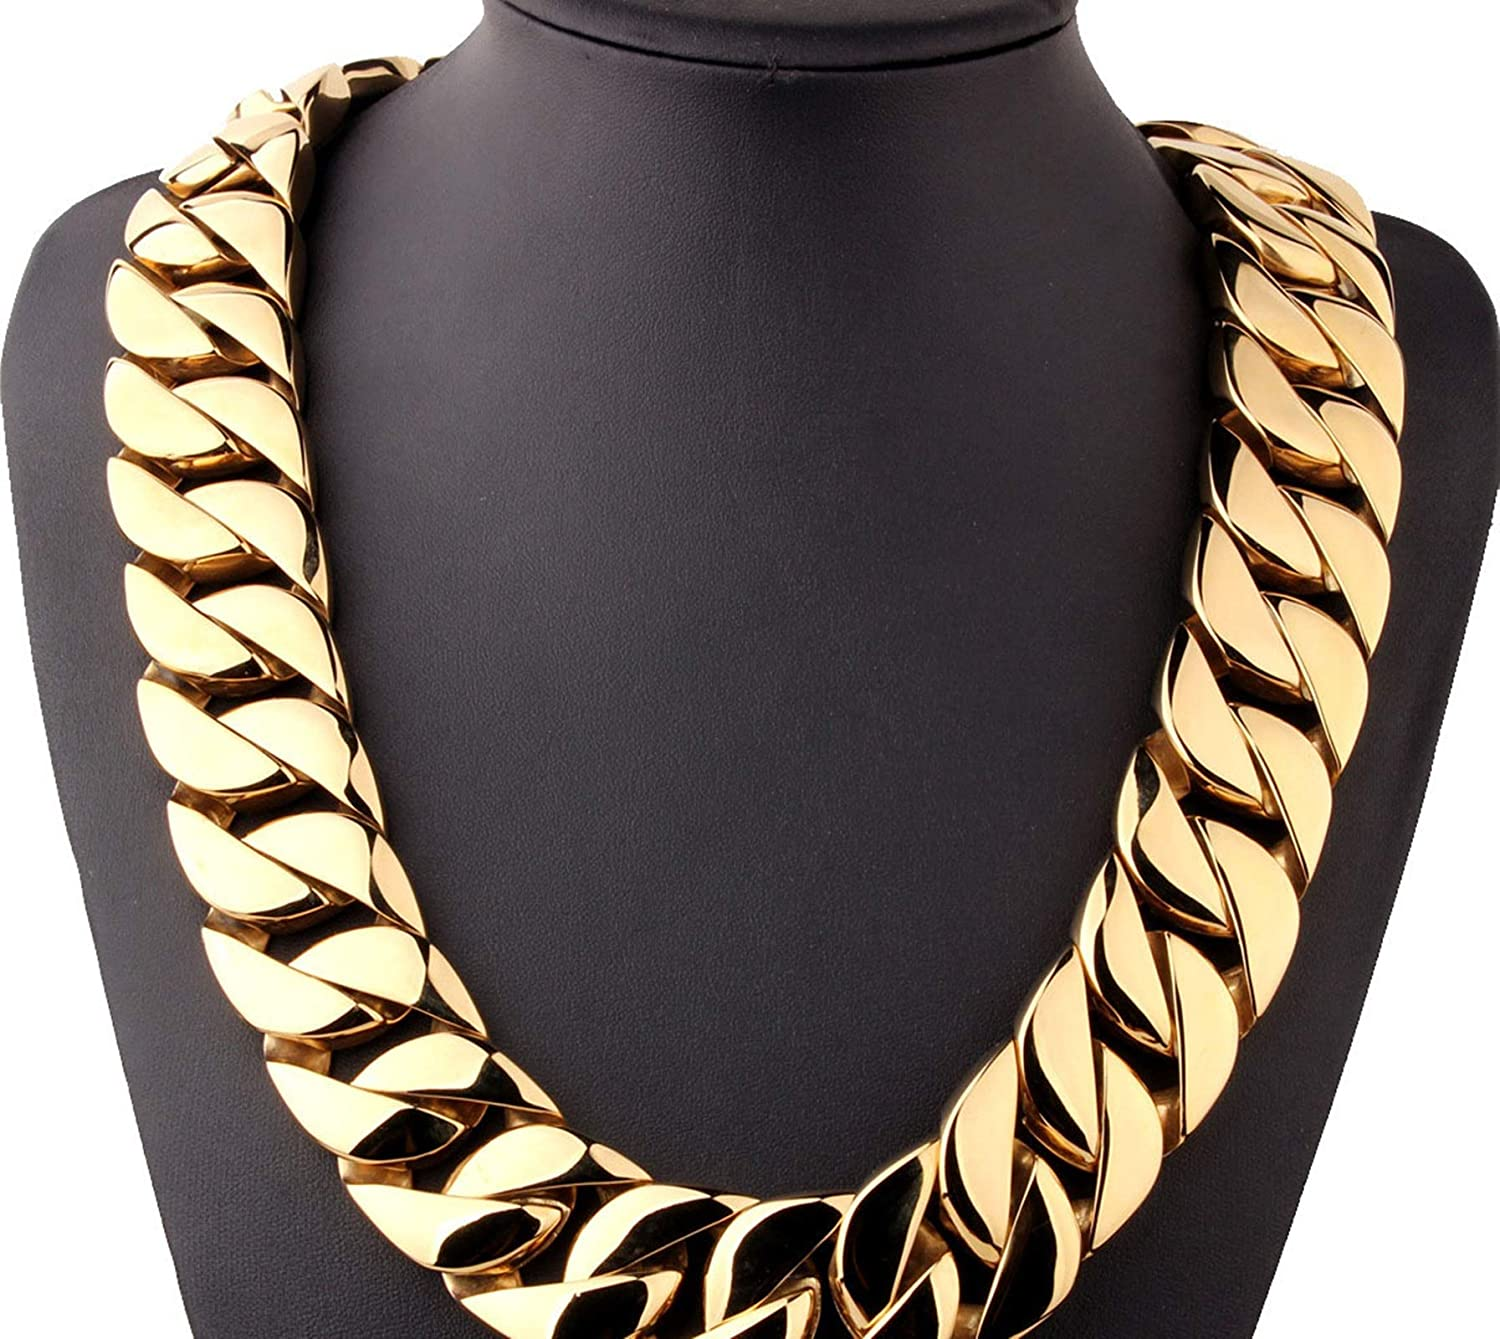 Daesar Men Necklace Stainless Steel 32MM Curb Necklace Chain Gold 71CM